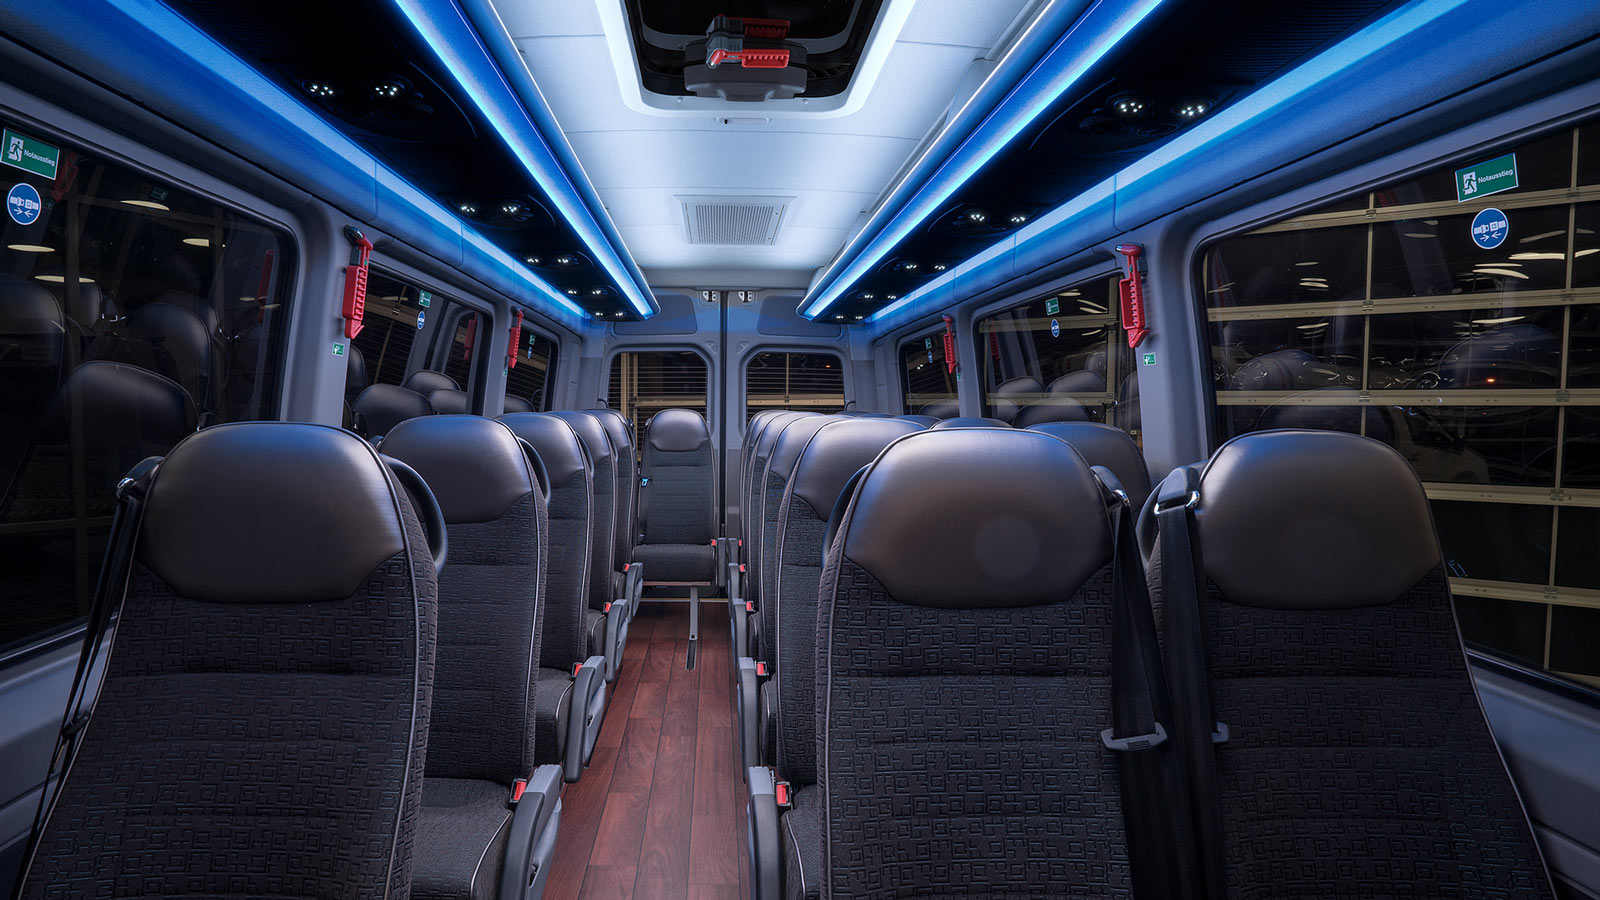 MAN BMC - Crafter Interieur Fotografie MAN Bus Modification Center